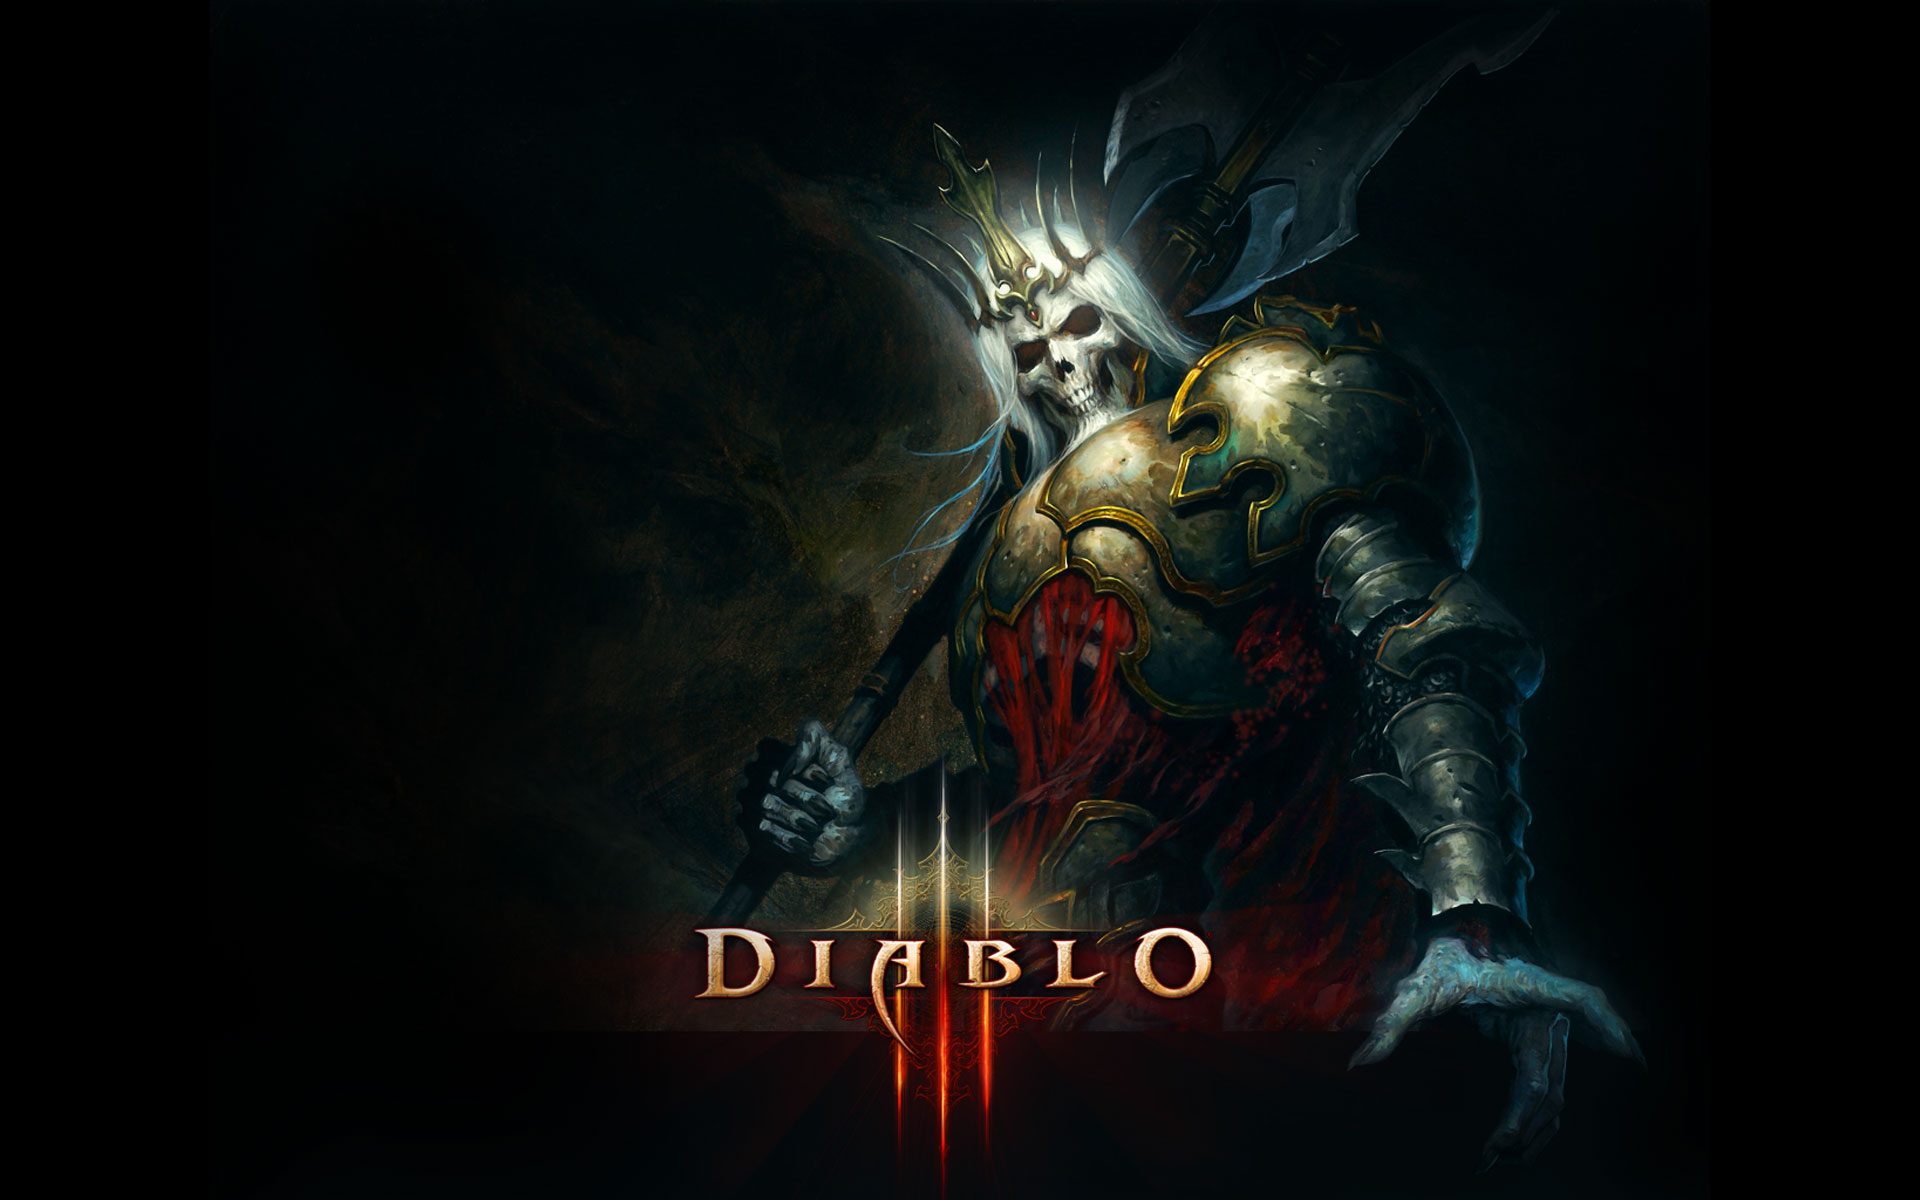 Diablo III HD Wallpapers  Backgrounds  Wallpaper  1920x1200